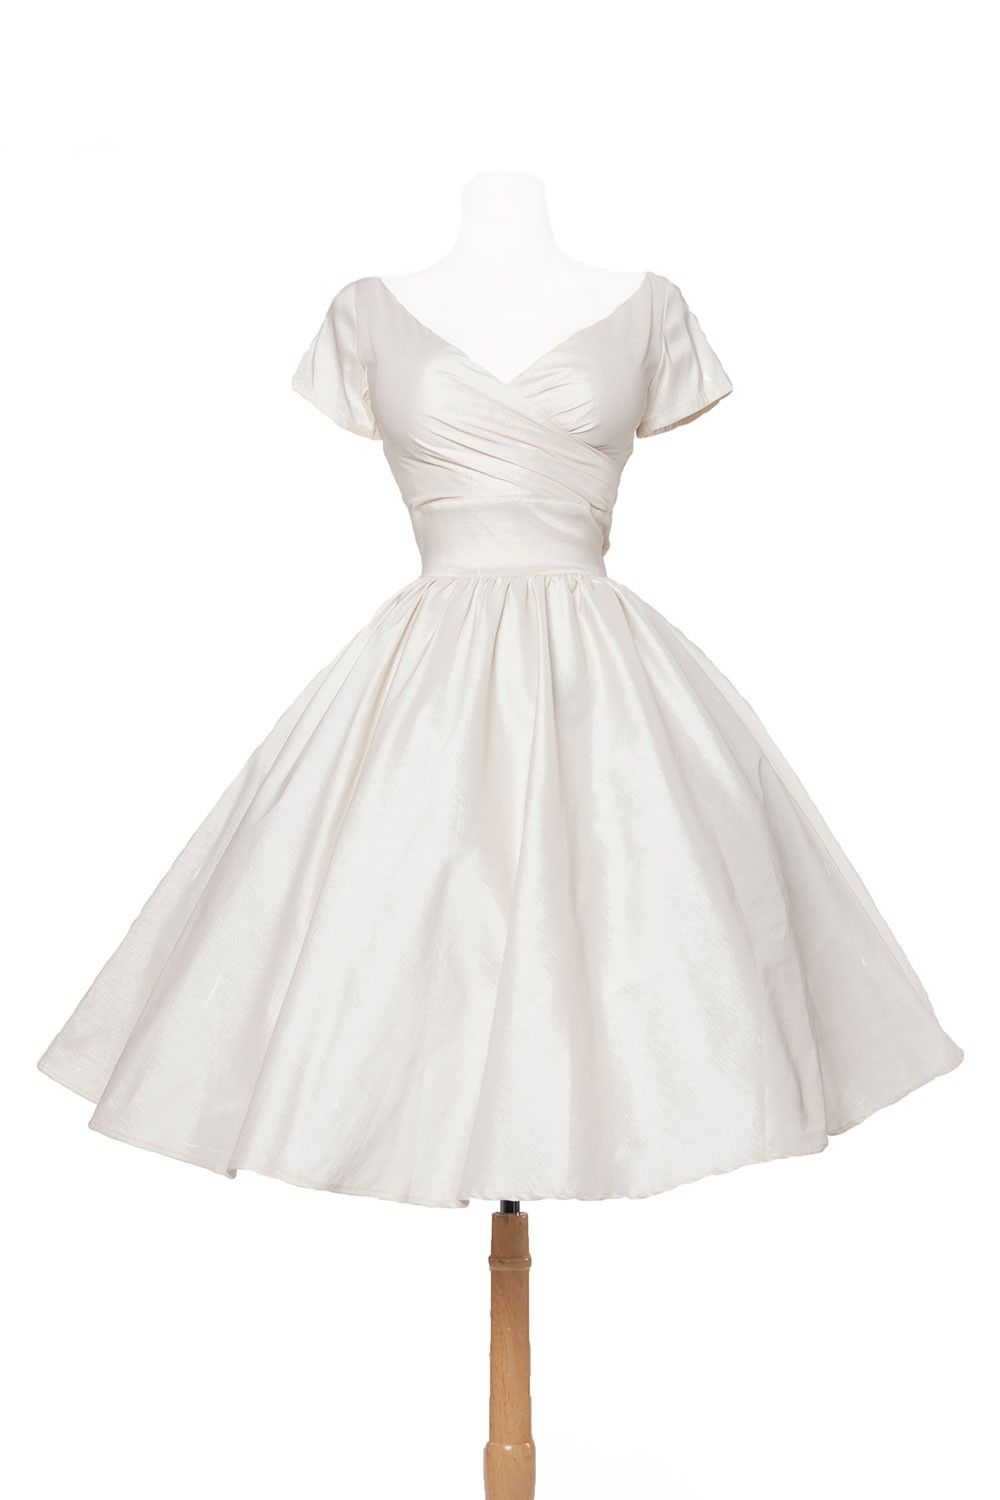 Pinup Couture Ava Swing Dress In Ivory Taffeta Clothing